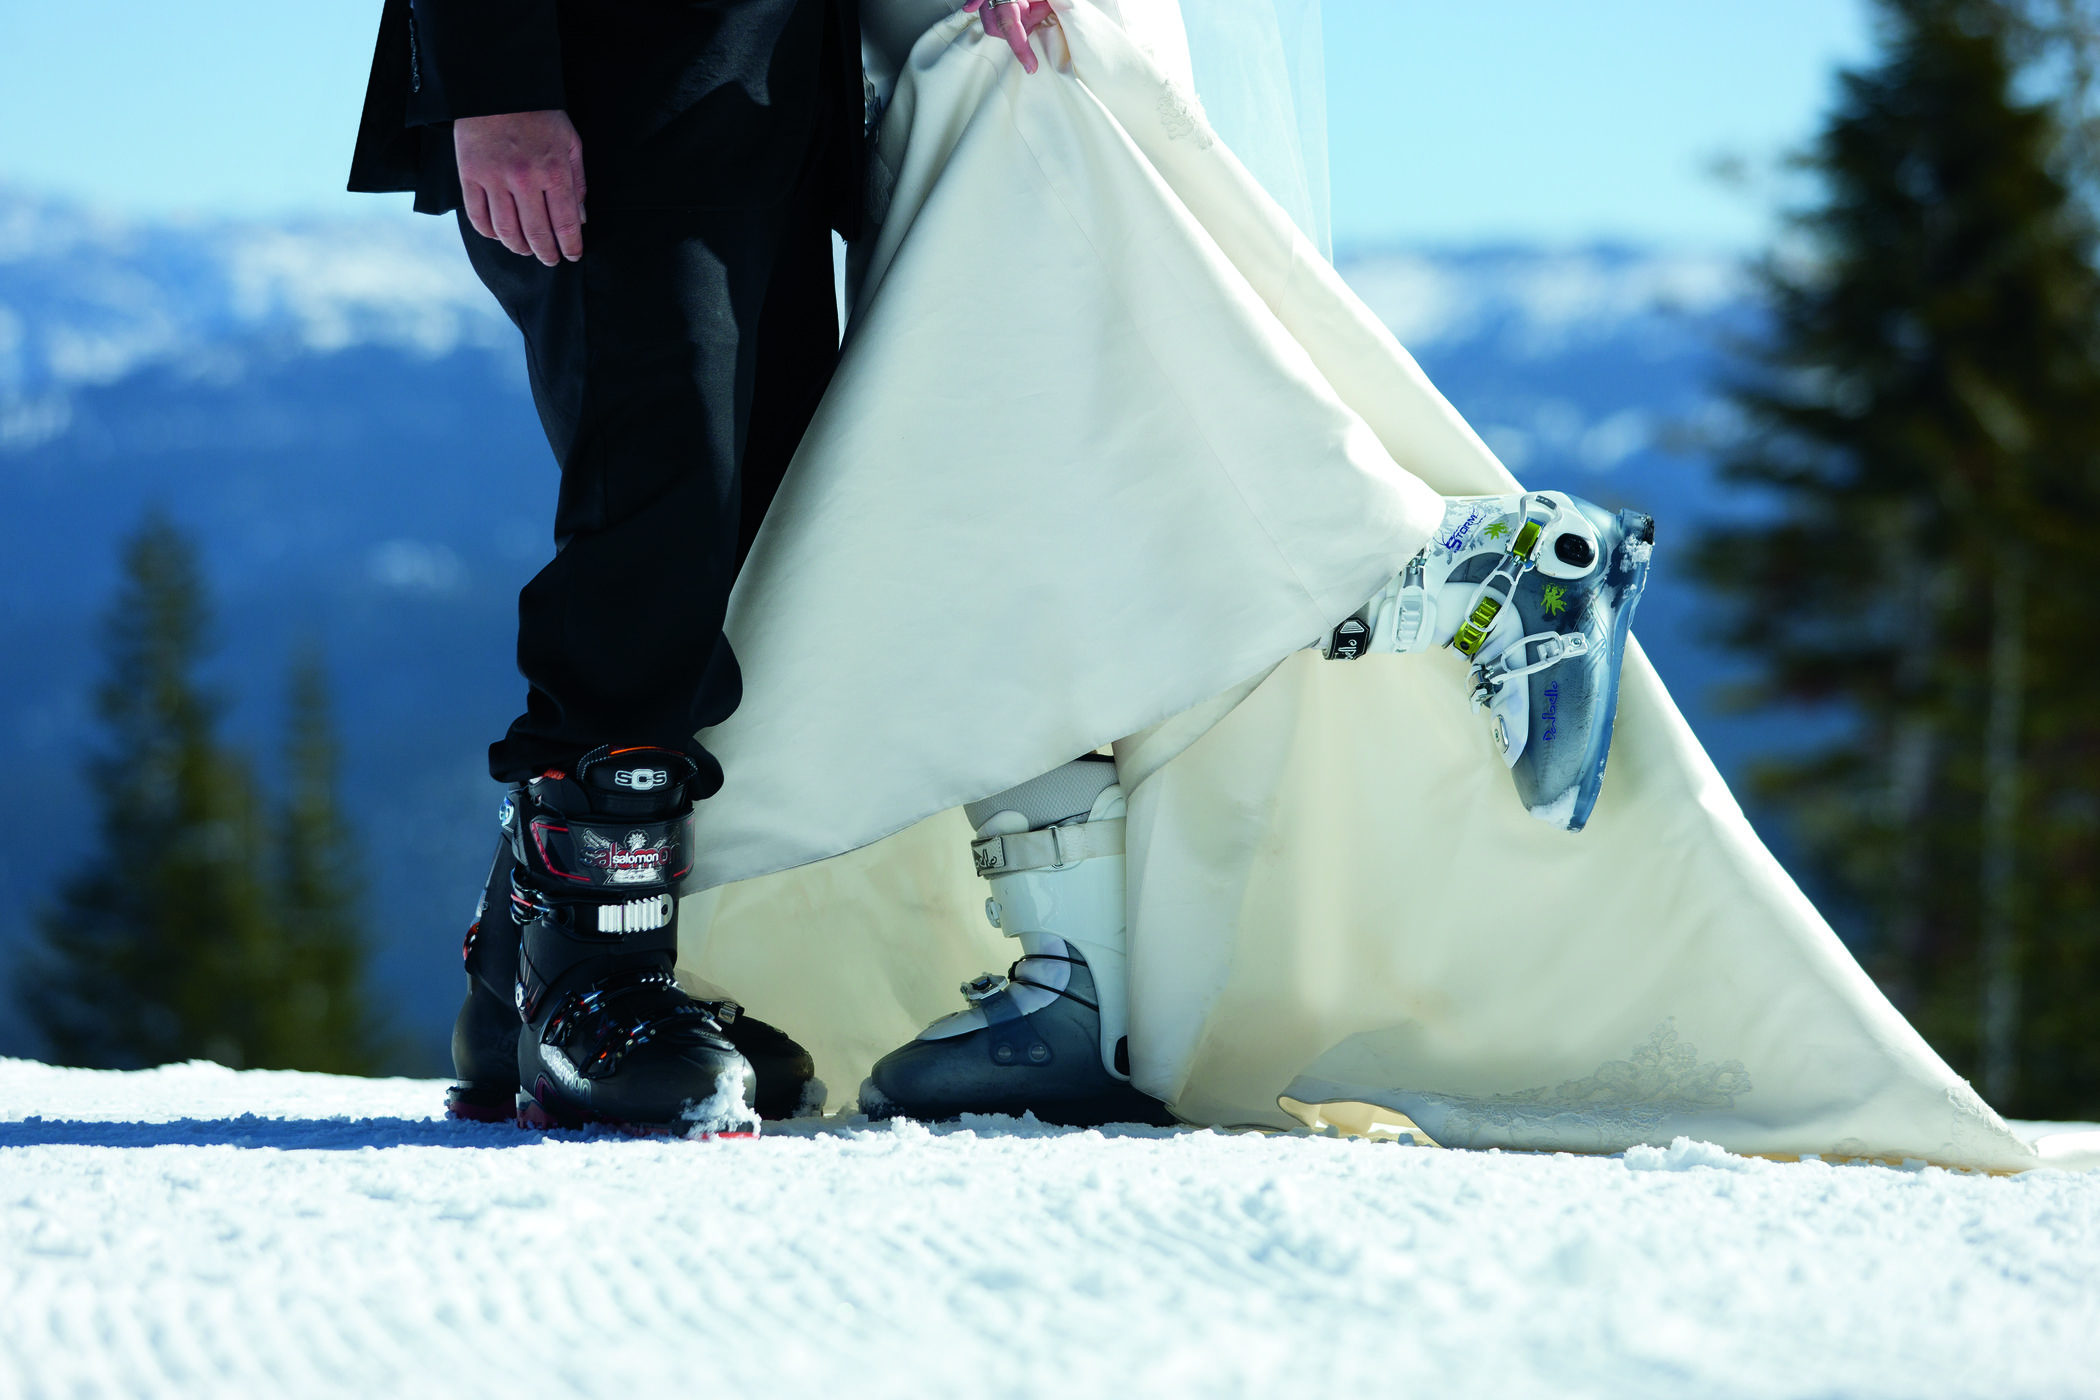 Avid skier? Make your special day slope-side at The Ritz-Carlton, Lake Tahoe during the winter season. Head out on the slopes afterwards and capture once-of-a-lifetime photography right on the slopes!